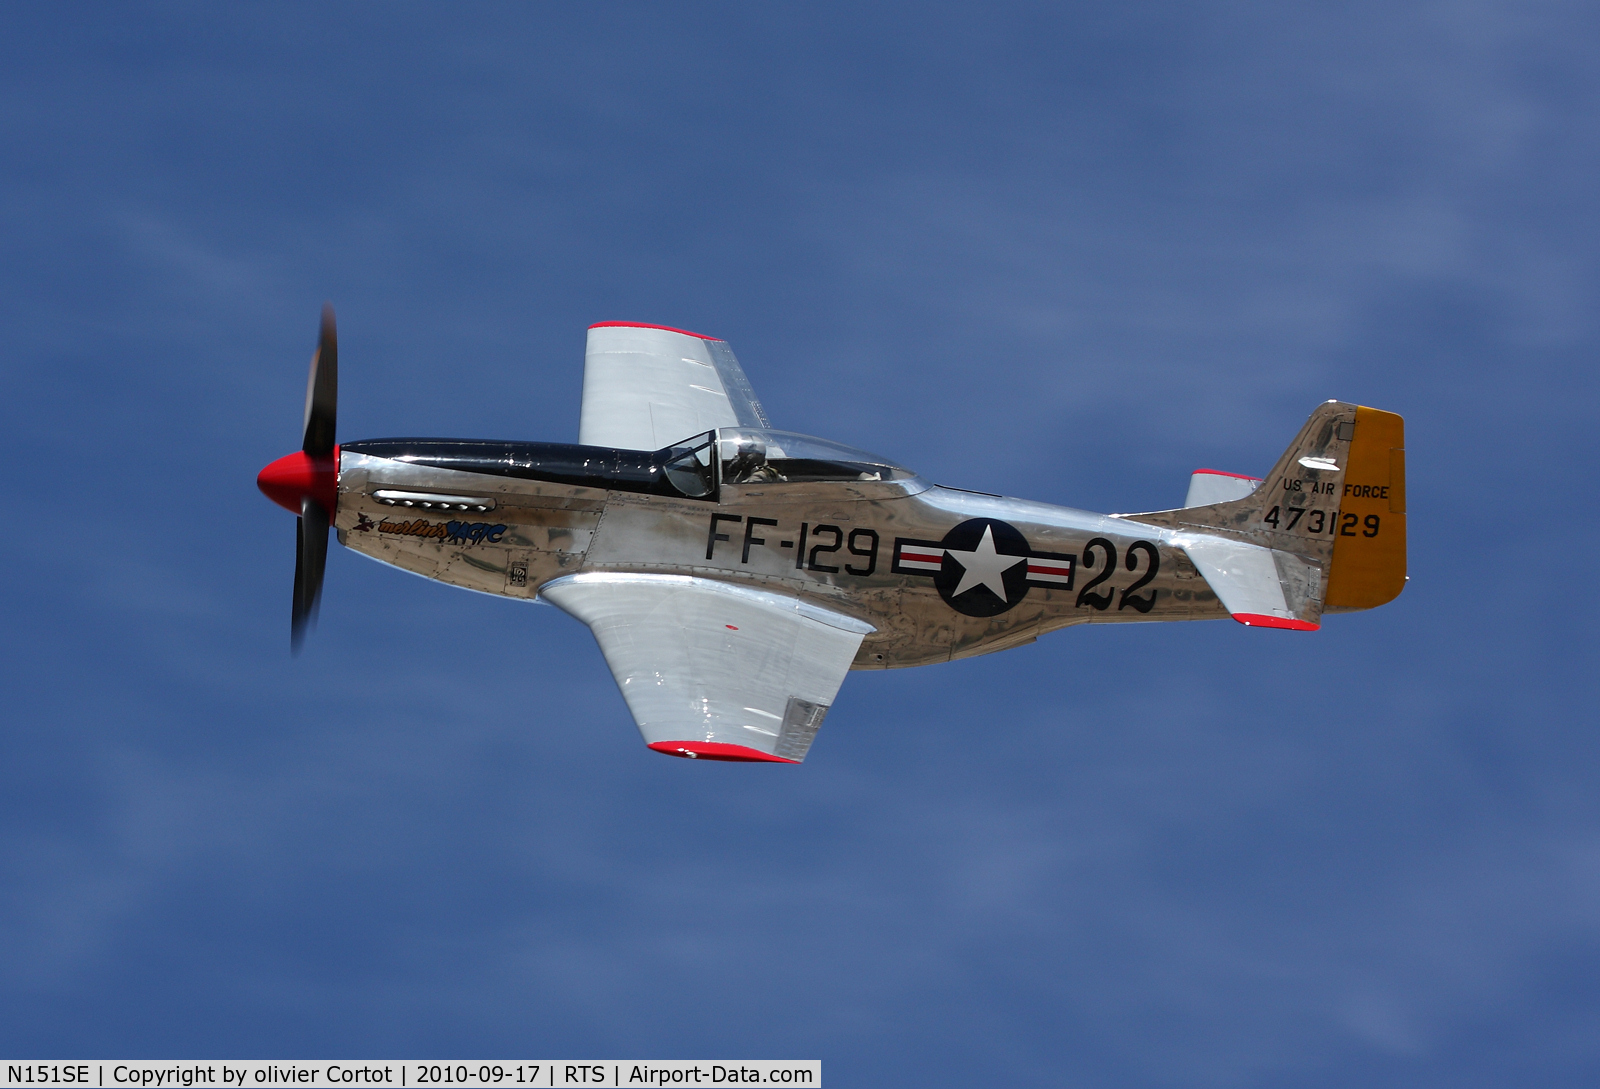 N151SE, 1944 North American P-51D Mustang C/N 122-39588/44-73129, Profil view of merlin magic during the 2010 Reno air races